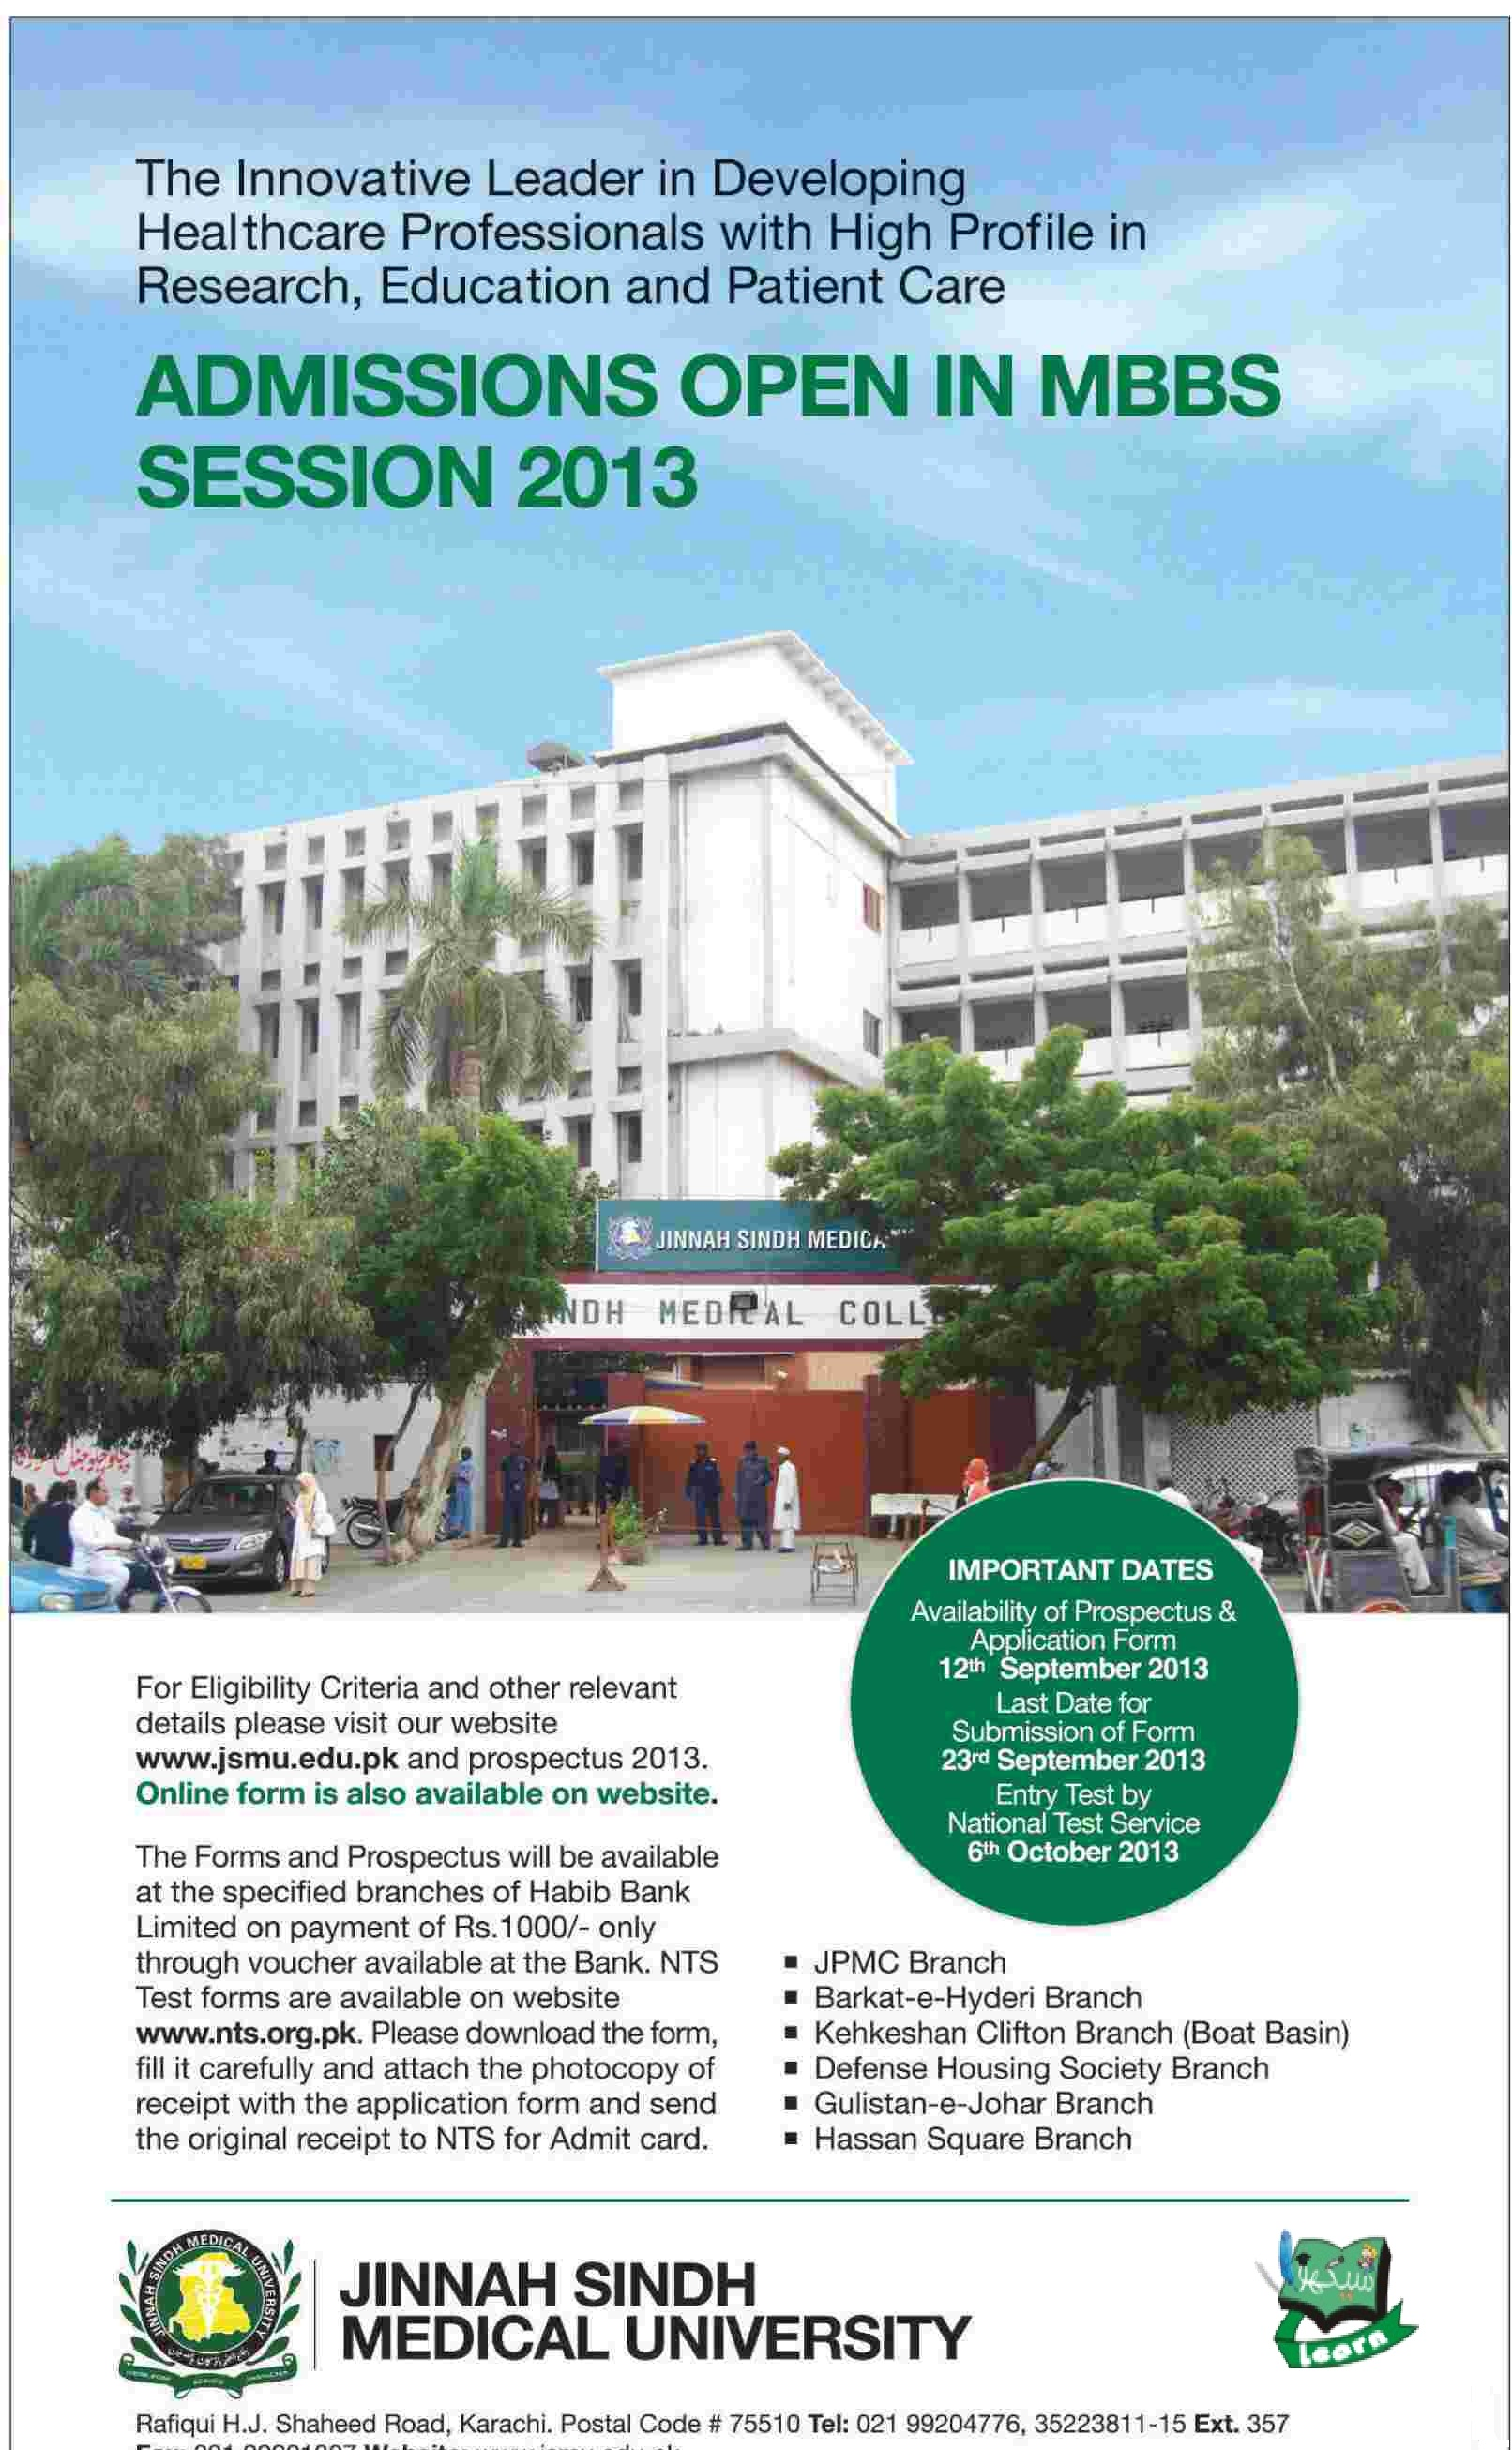 Jinnah Sindh Medical University Karachi MBBS Admission 2013